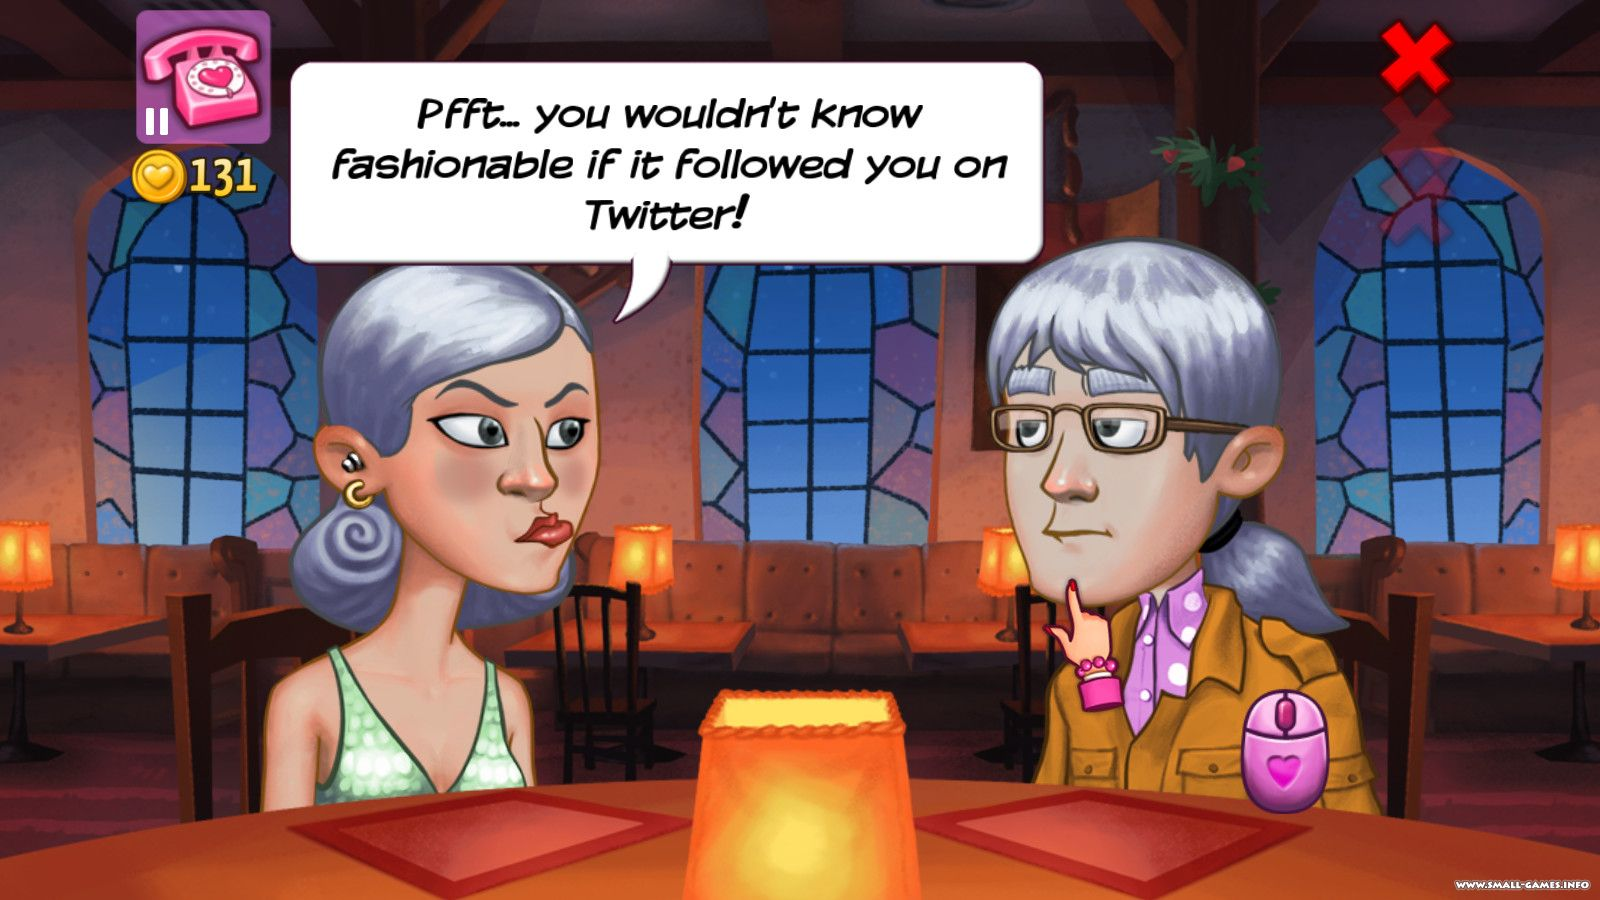 kitty matchmaking Kitty powers' matchmaker is a dating sim in which the players plays as a matchmaker employed by kitty powers, the drag queen personality of british game developer richard franke, who has to expand a tiny little dating agency into a large one by way of creating many successful dates.